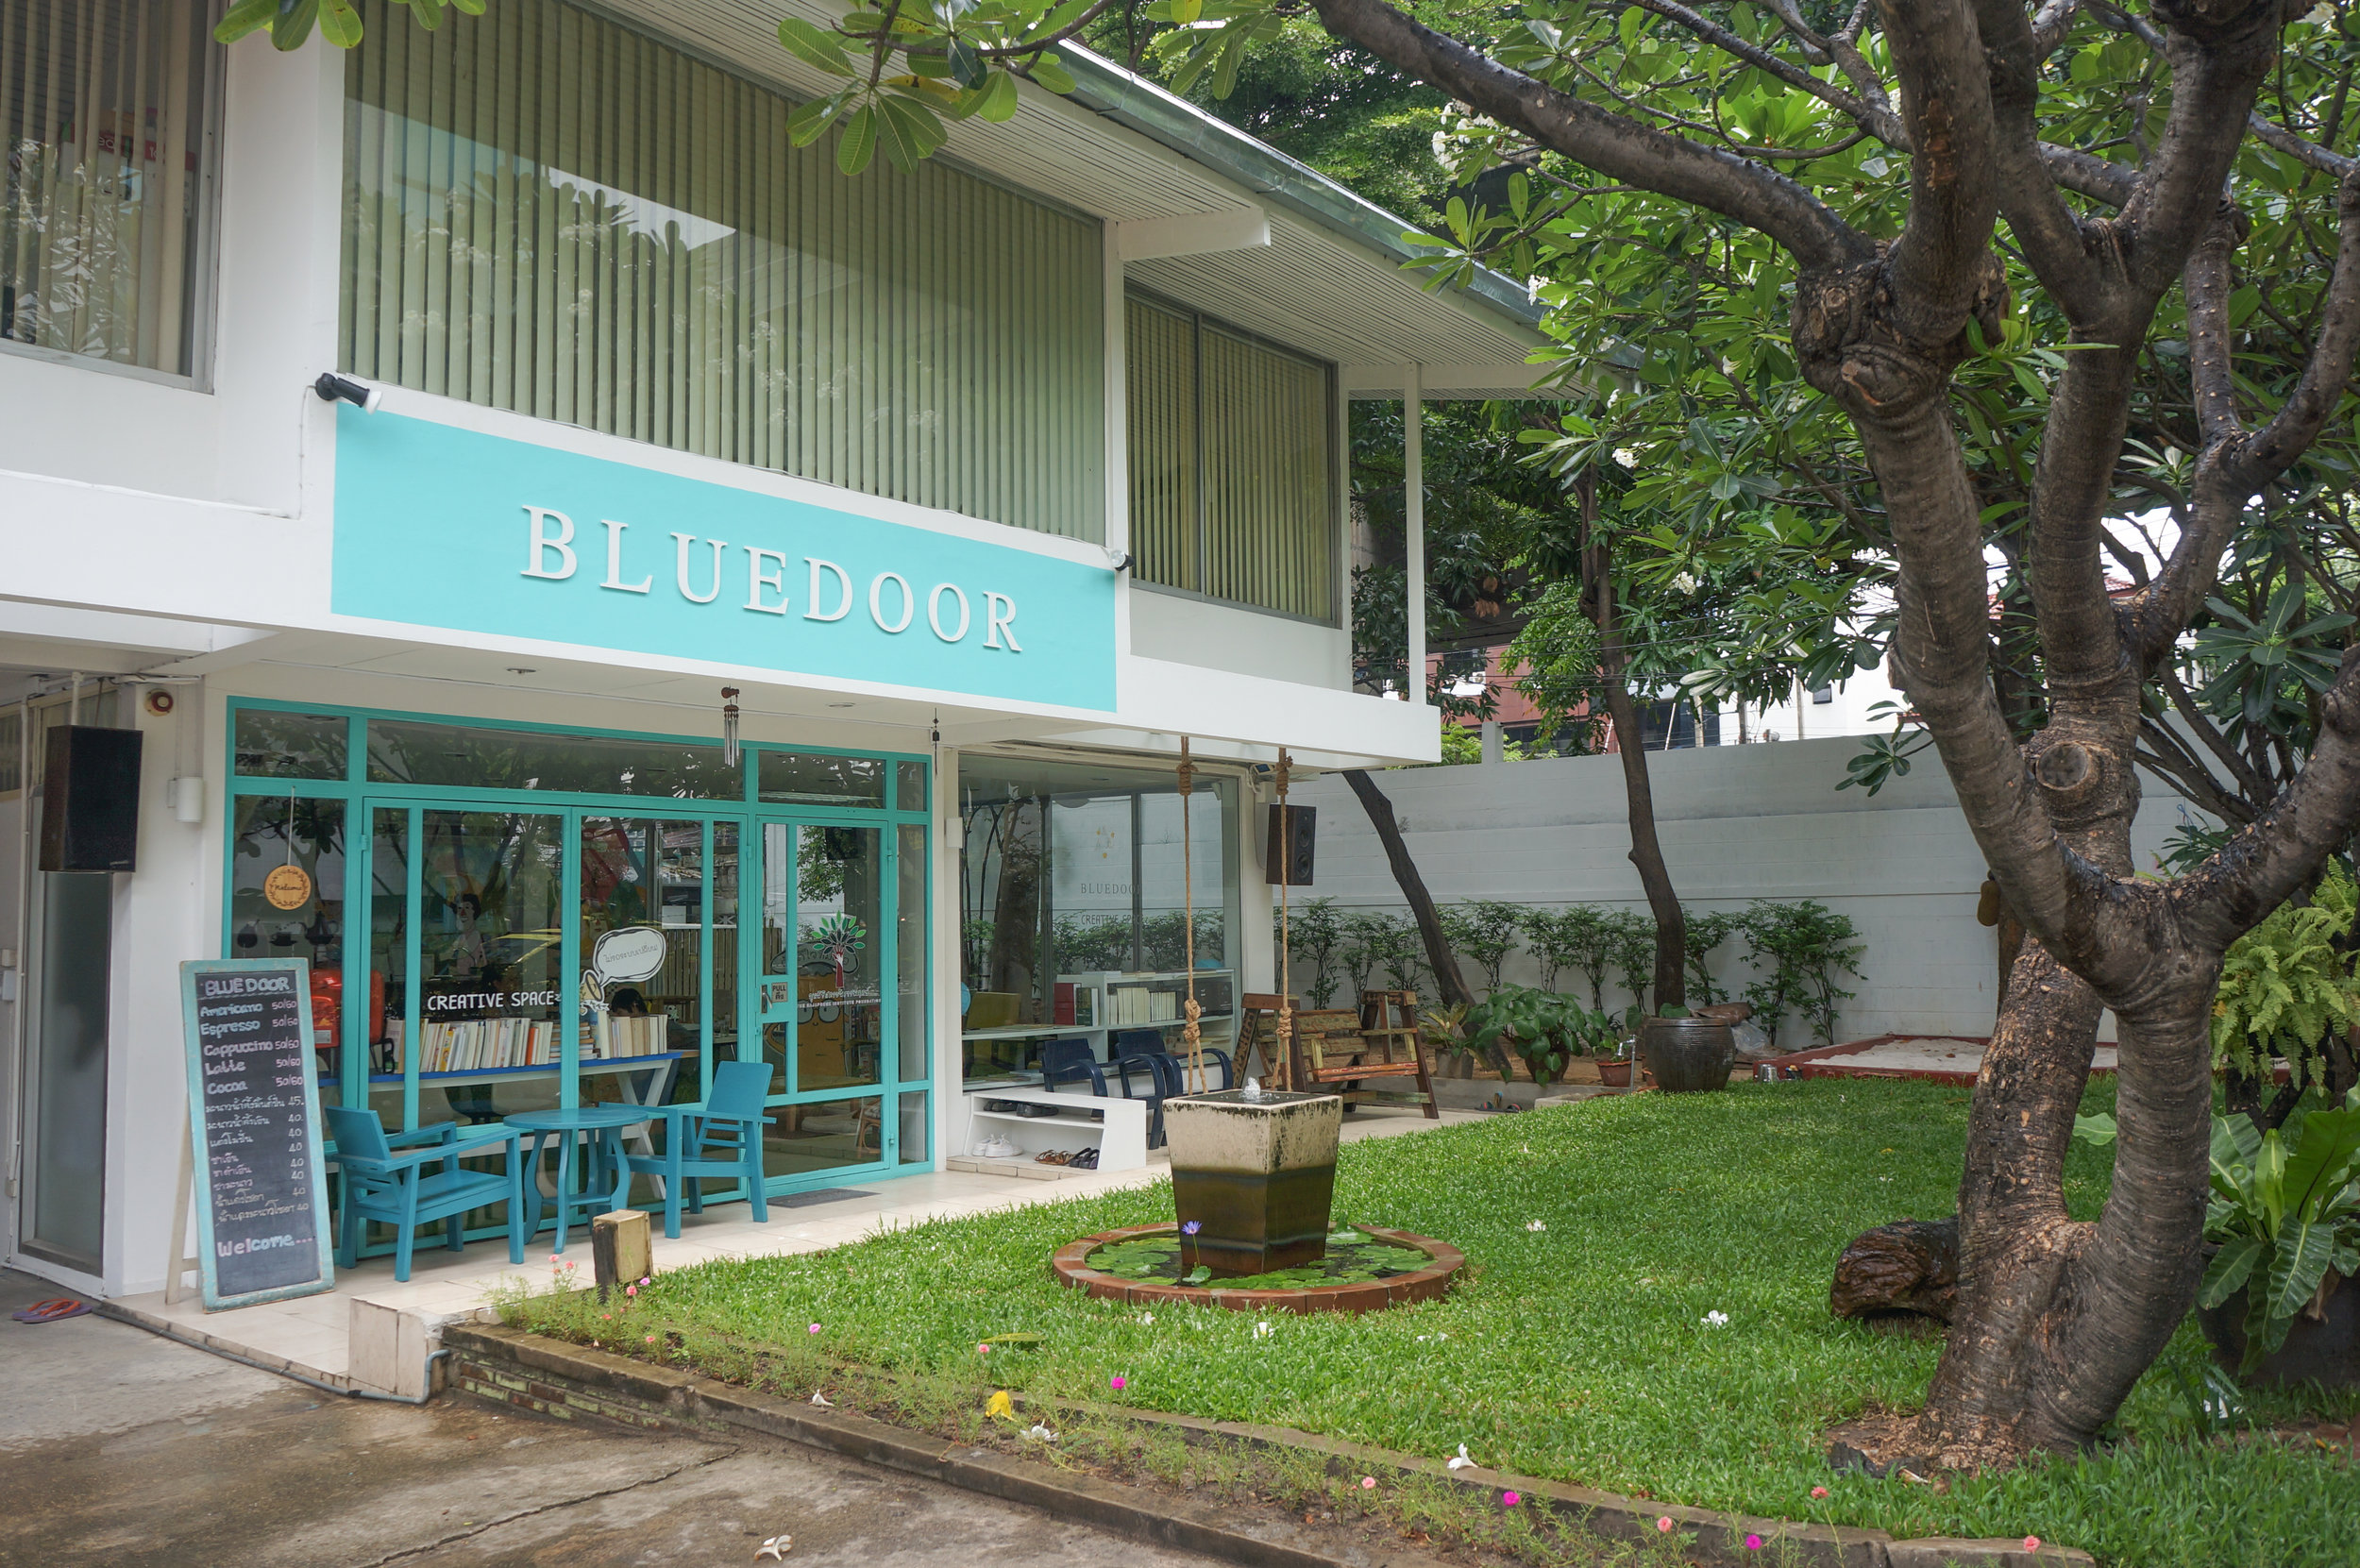 Blue Door Creative Space: Outdoor space for kids